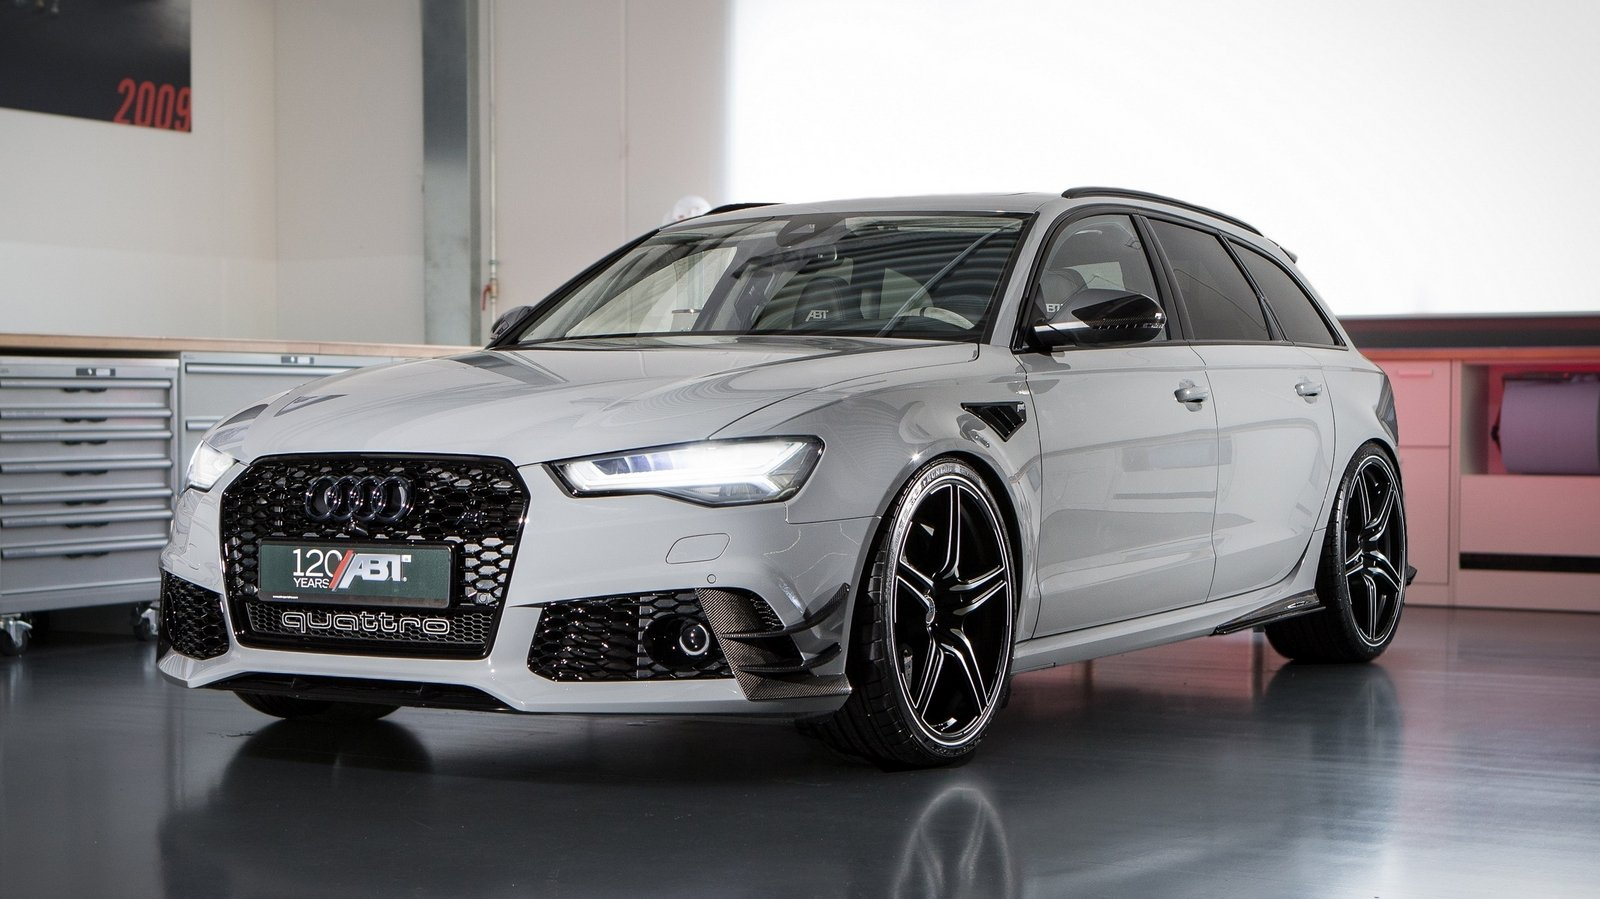 2016 audi rs6 avant by abt sportsline picture 669224 car review top speed. Black Bedroom Furniture Sets. Home Design Ideas